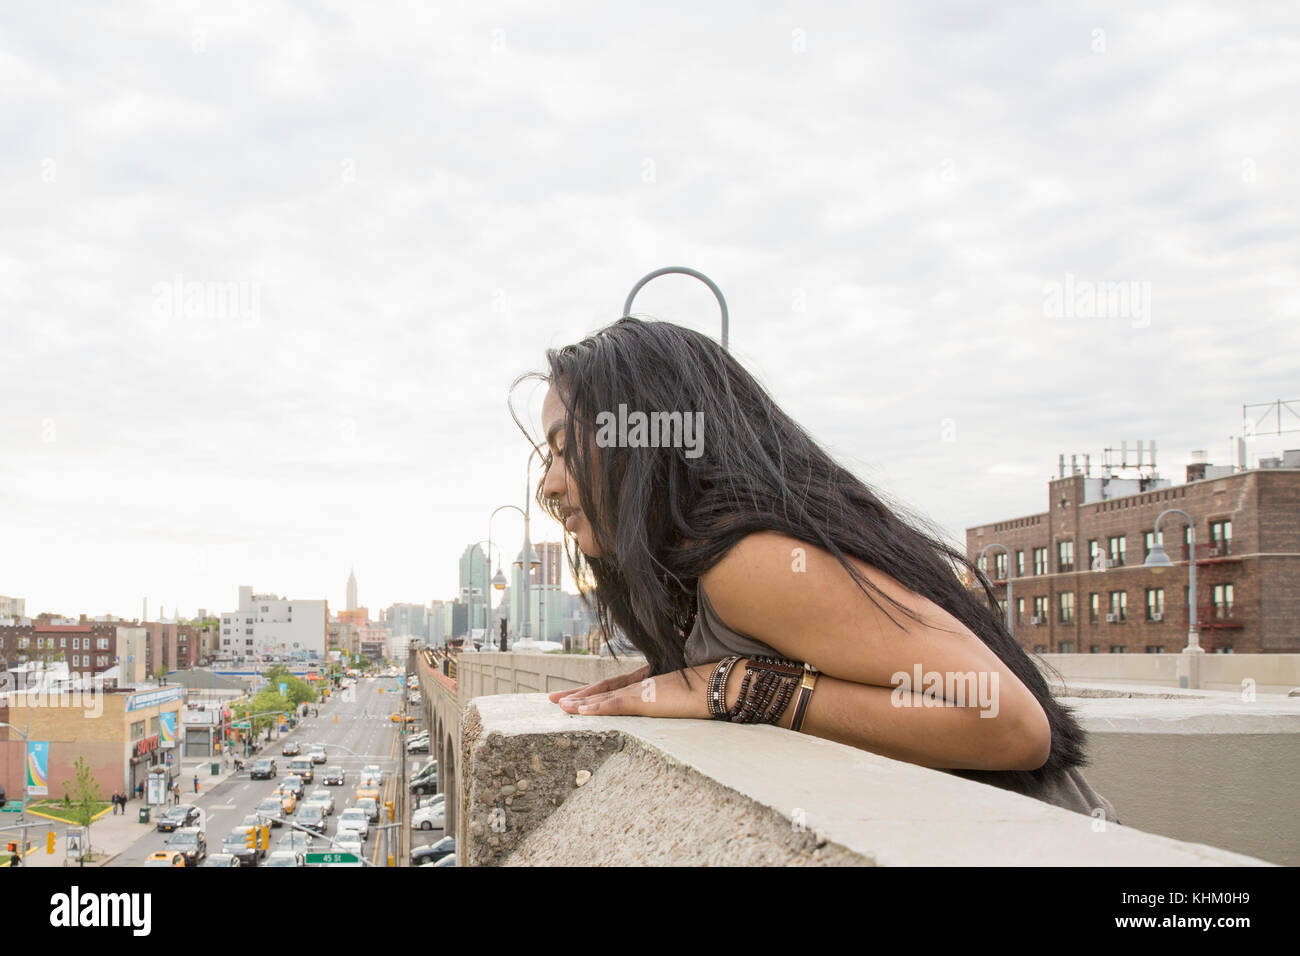 Young woman leaning on a bridge in Queens, New York - Stock Image